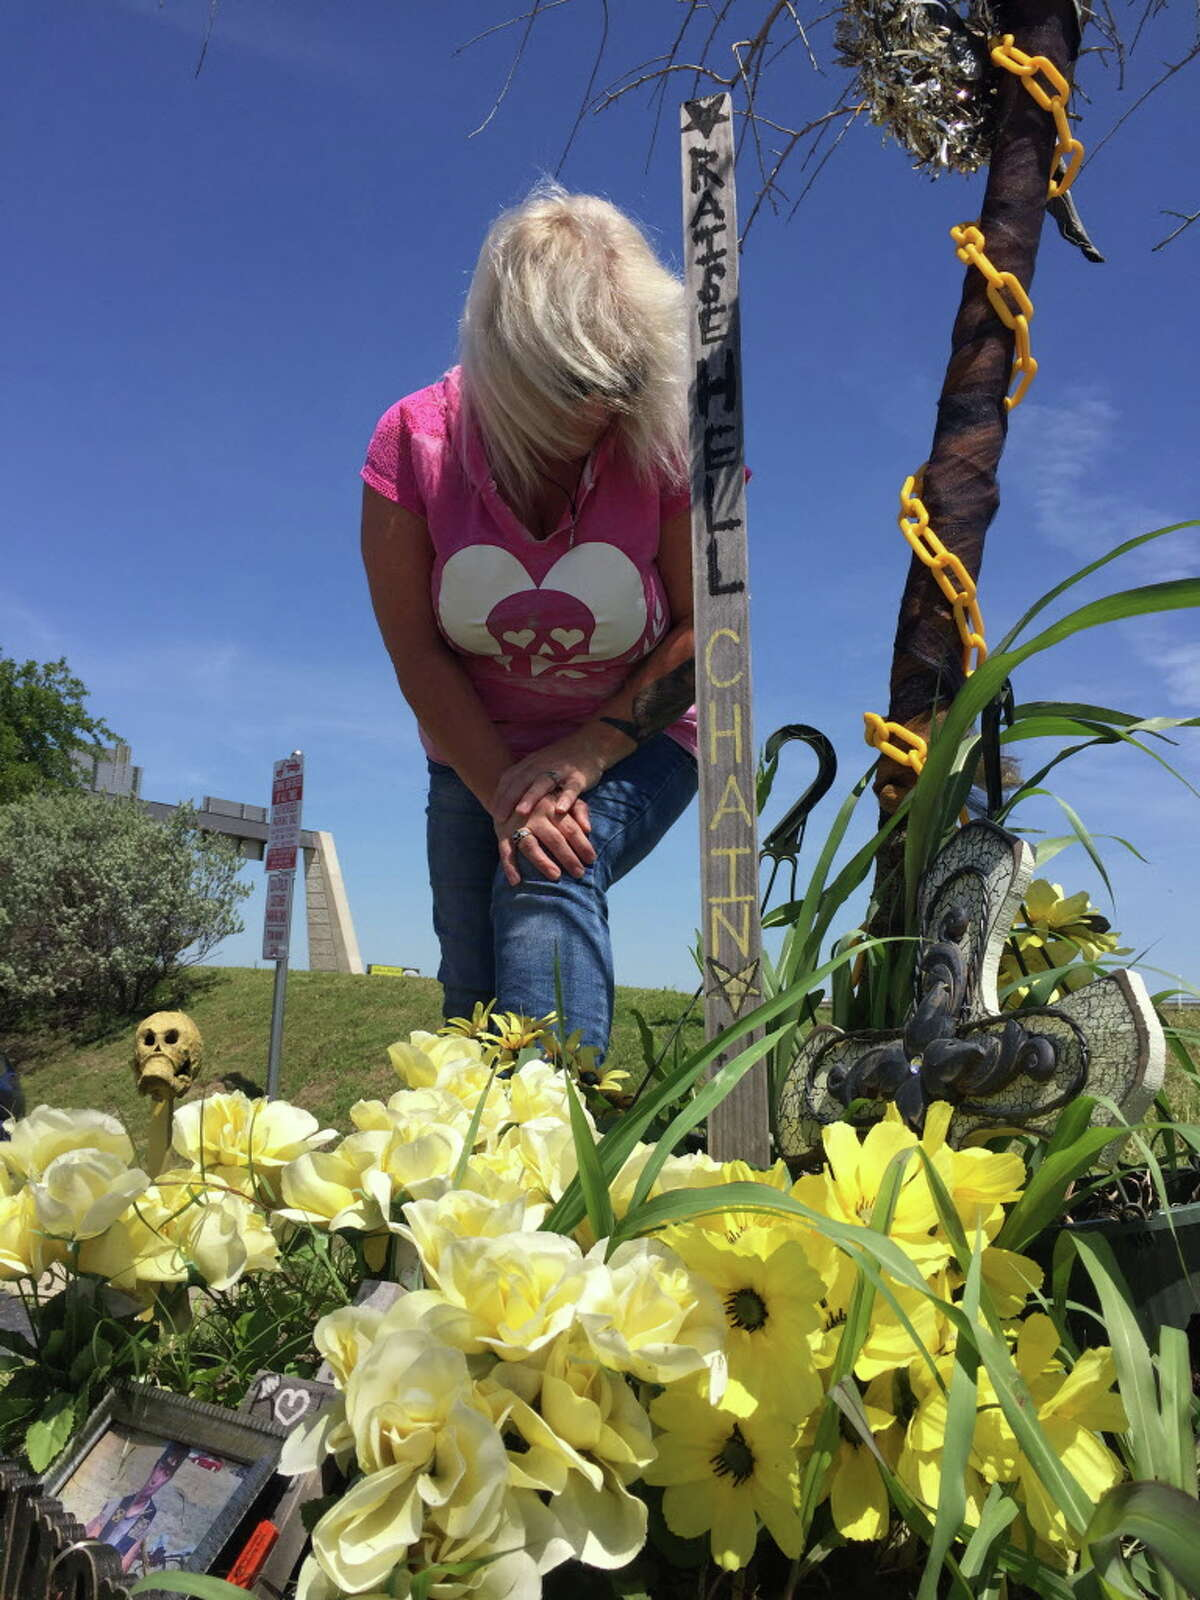 Yvonne Reeves leans over the shrine to seven members of the Cossacks Motorcycle Club, including her son, who were killed in May 2015 during a clash outside the Twin Peaks in Waco. Photo by Dane Schiller May 2016